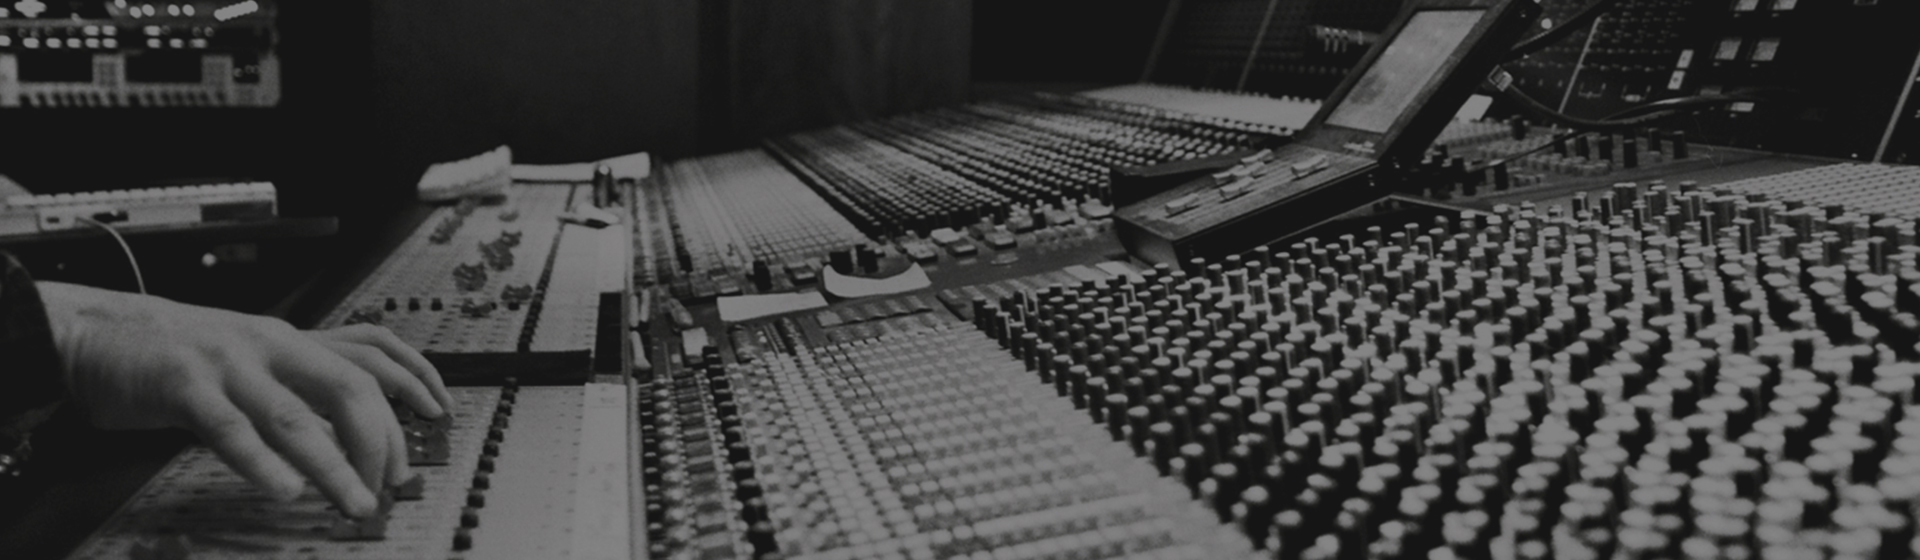 Music producer blog